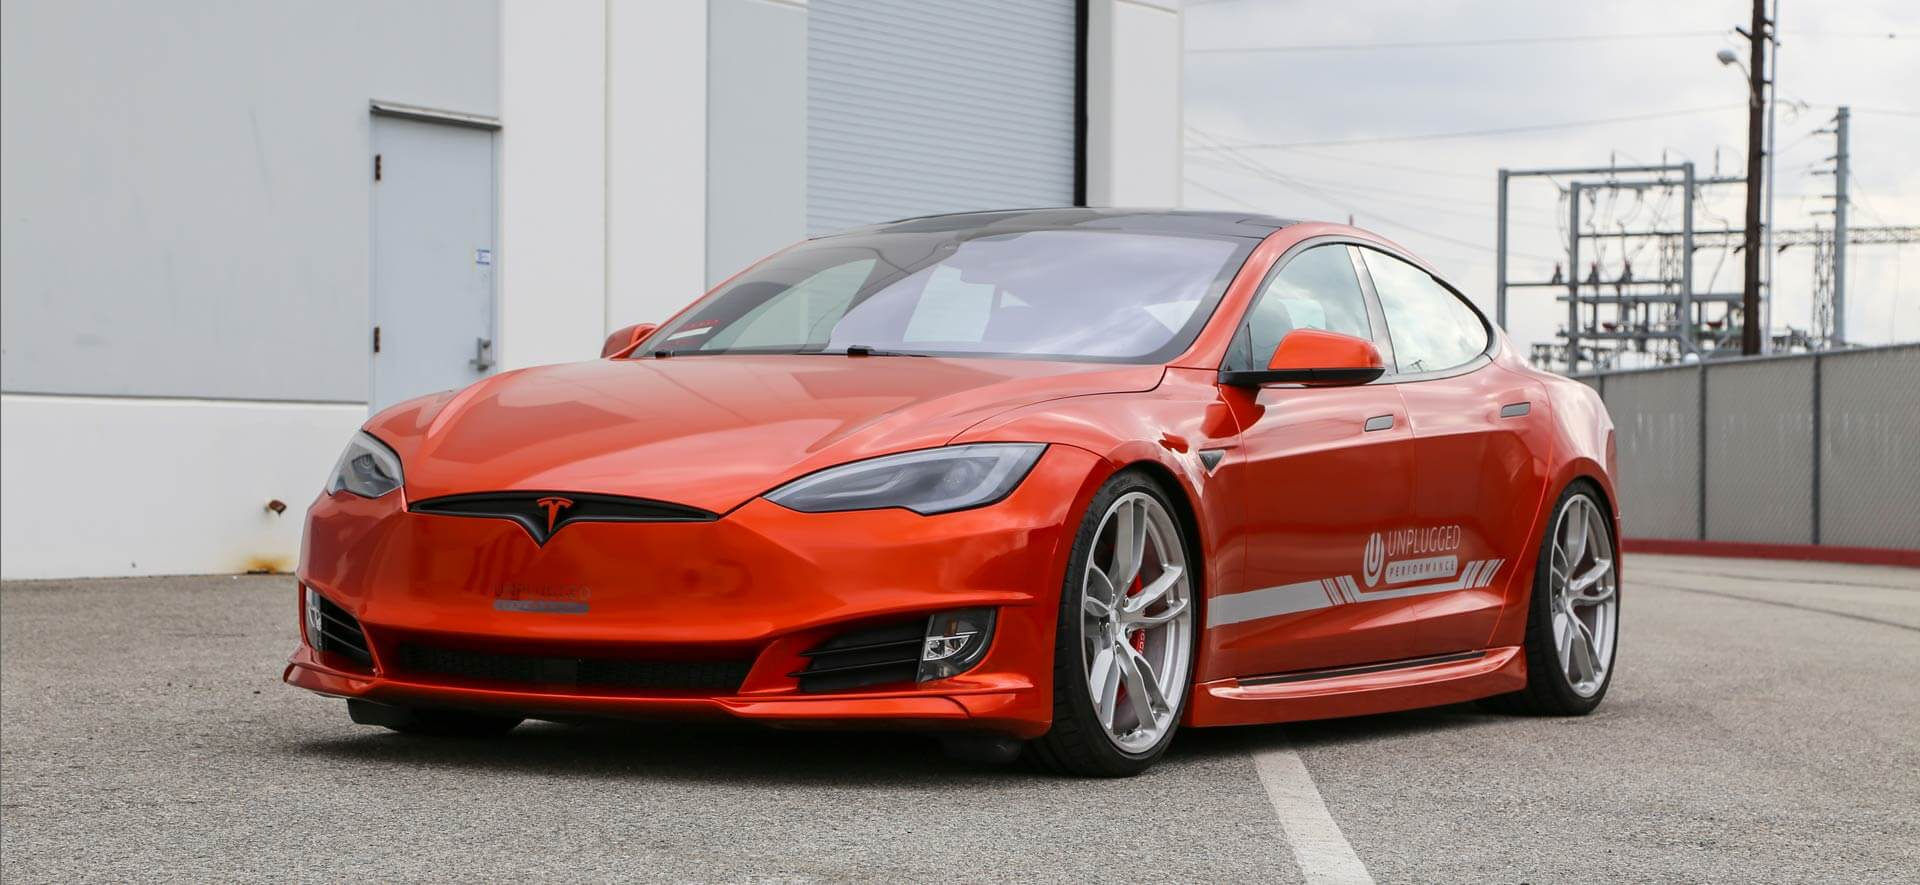 Refresh Front Fascia for Tesla Model S by Unplugged Performance